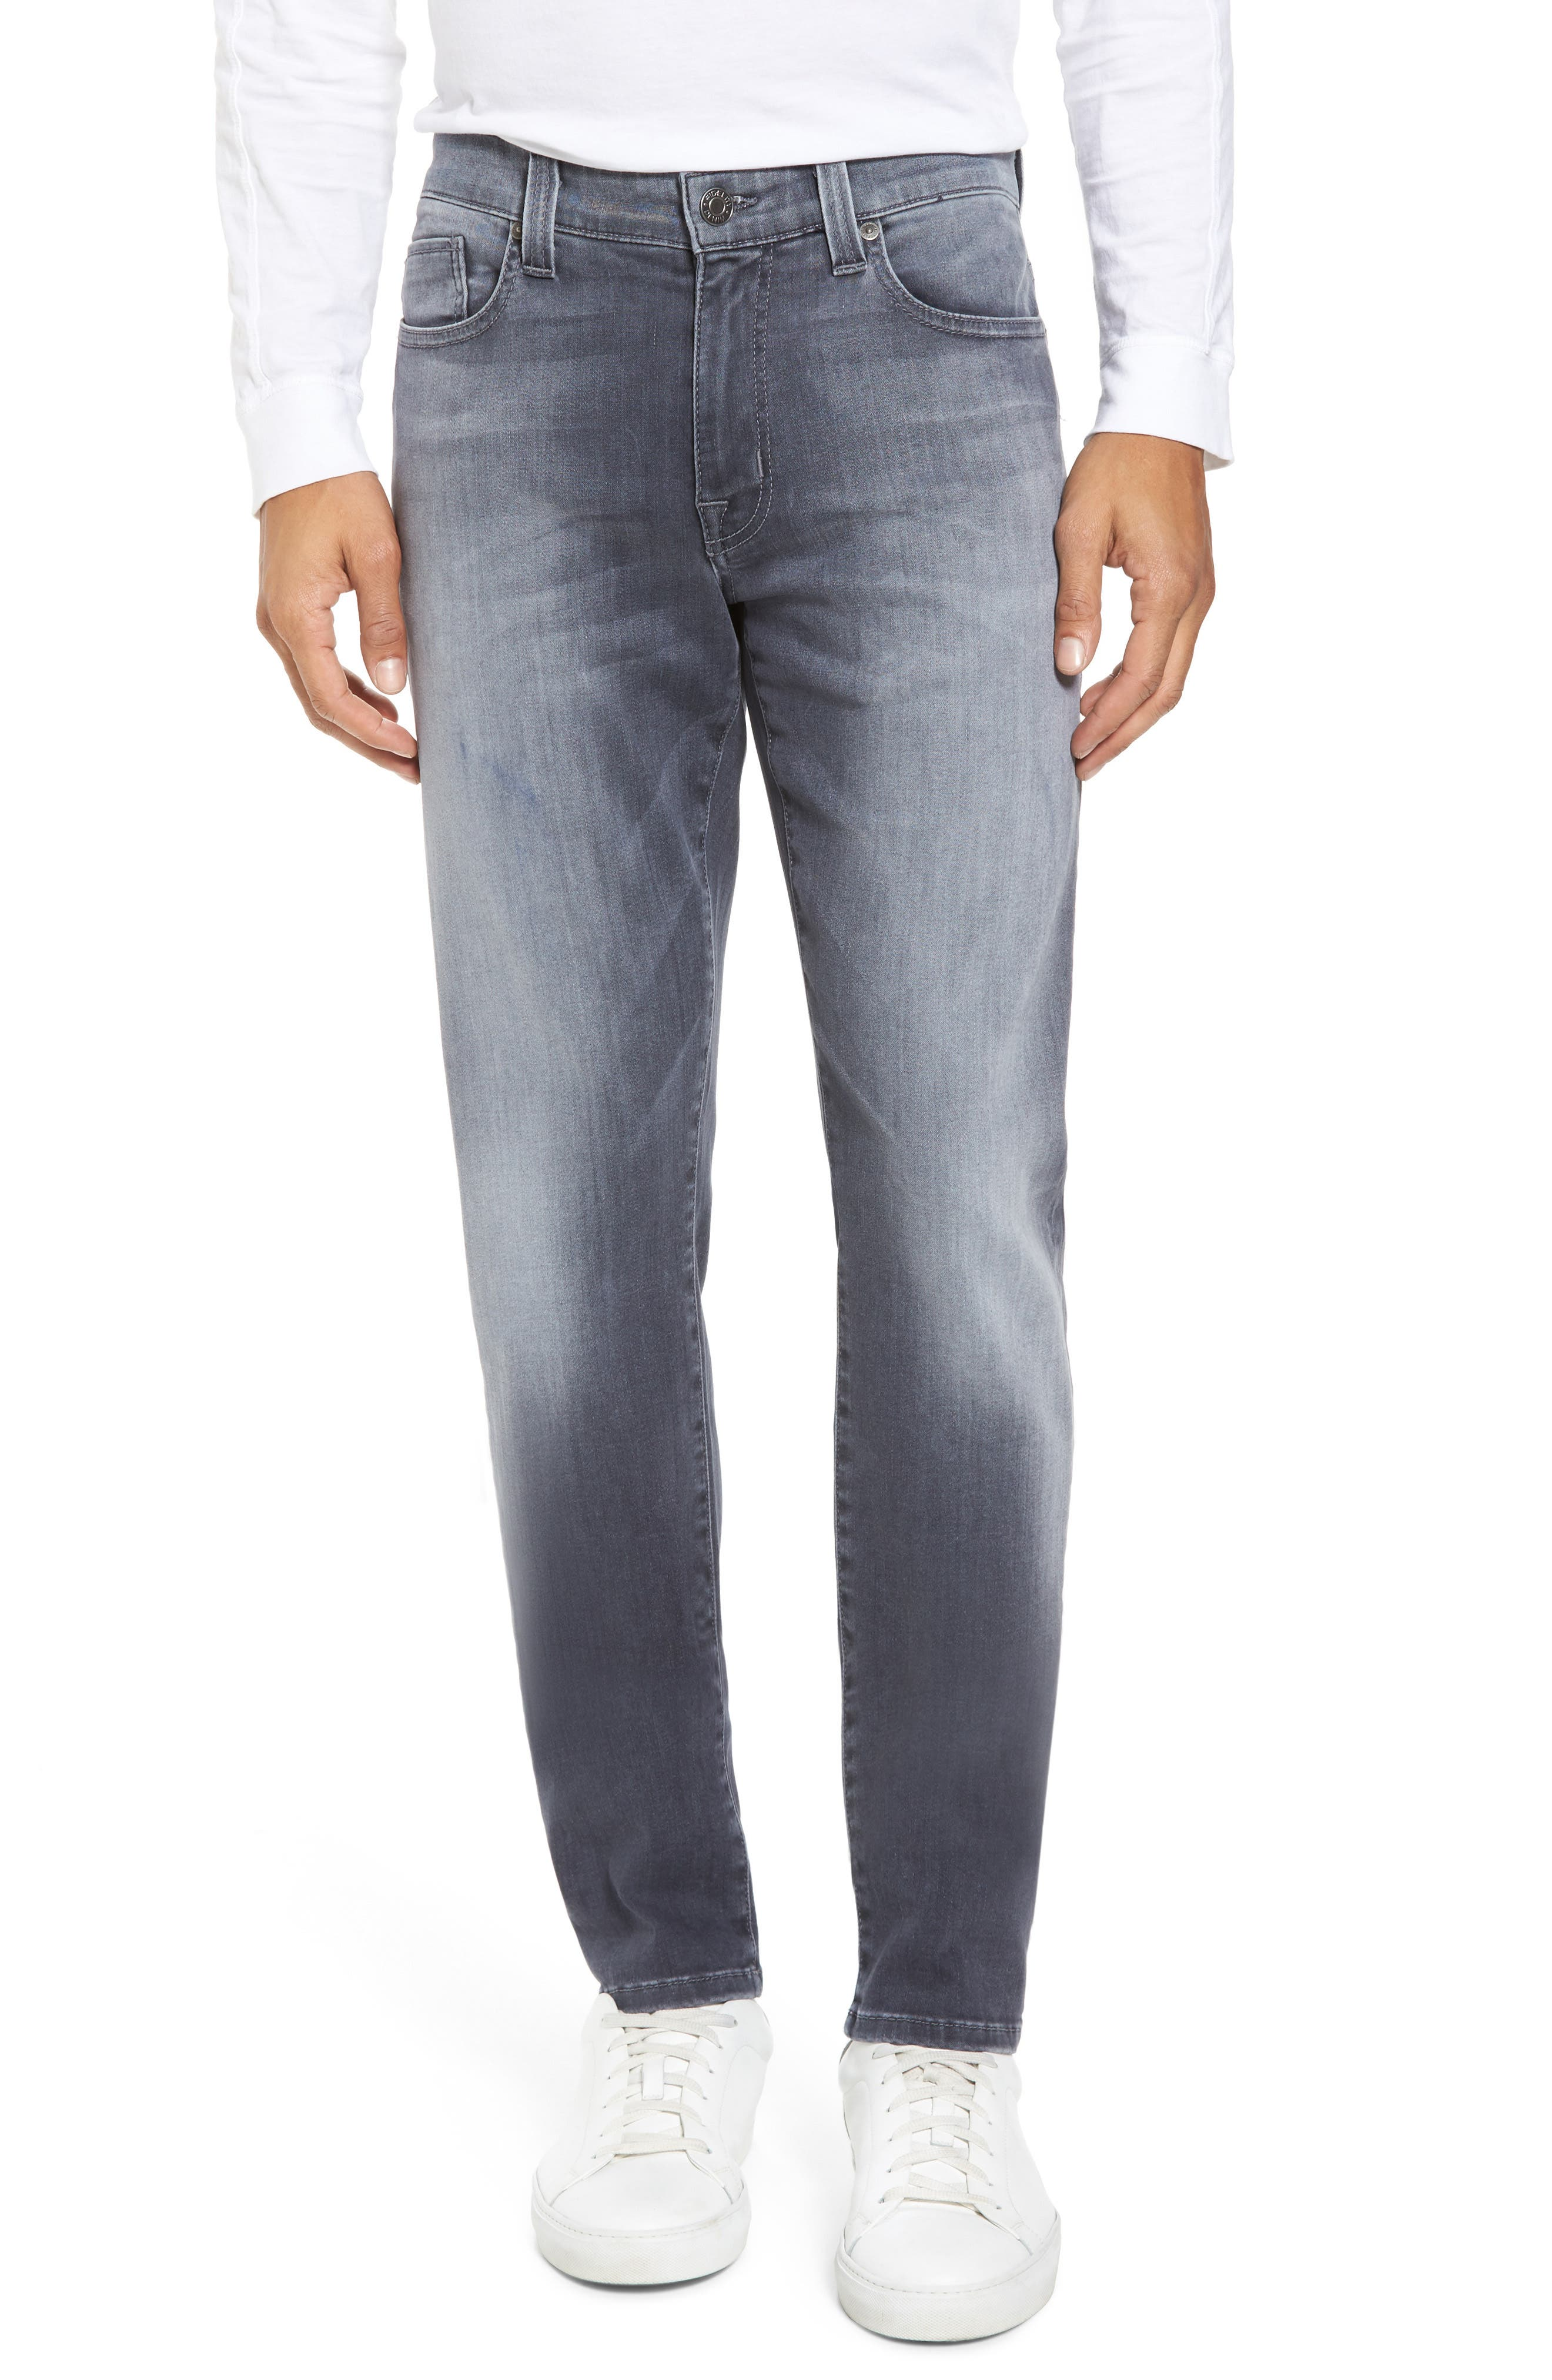 Main Image - Fidelity Denim Torino Slim Fit Jeans (Fade To Grey)